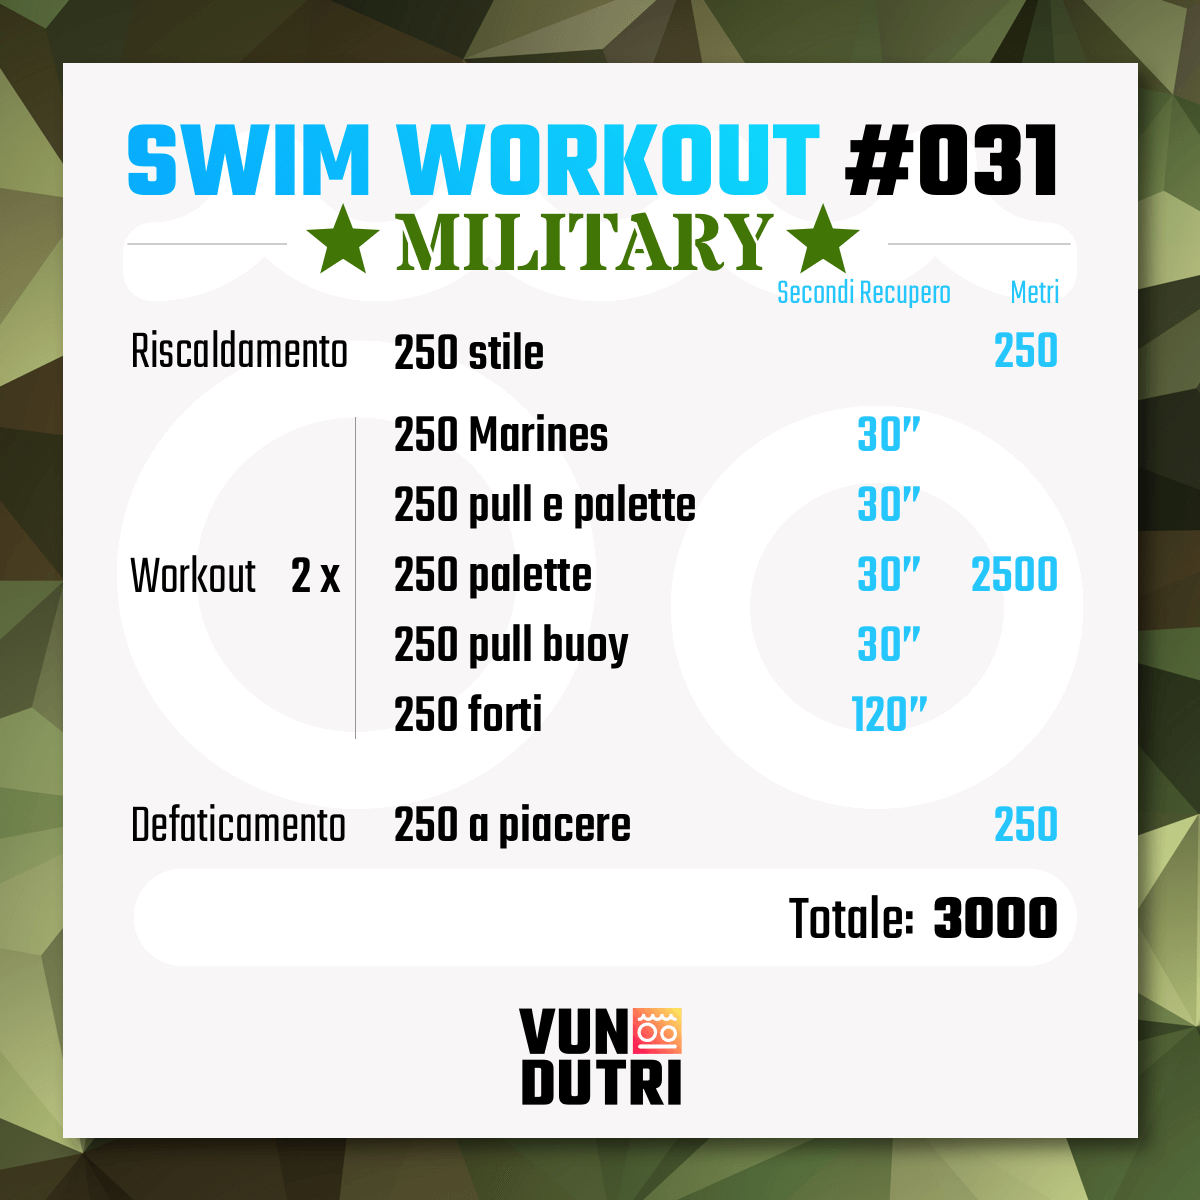 Swim workout 031